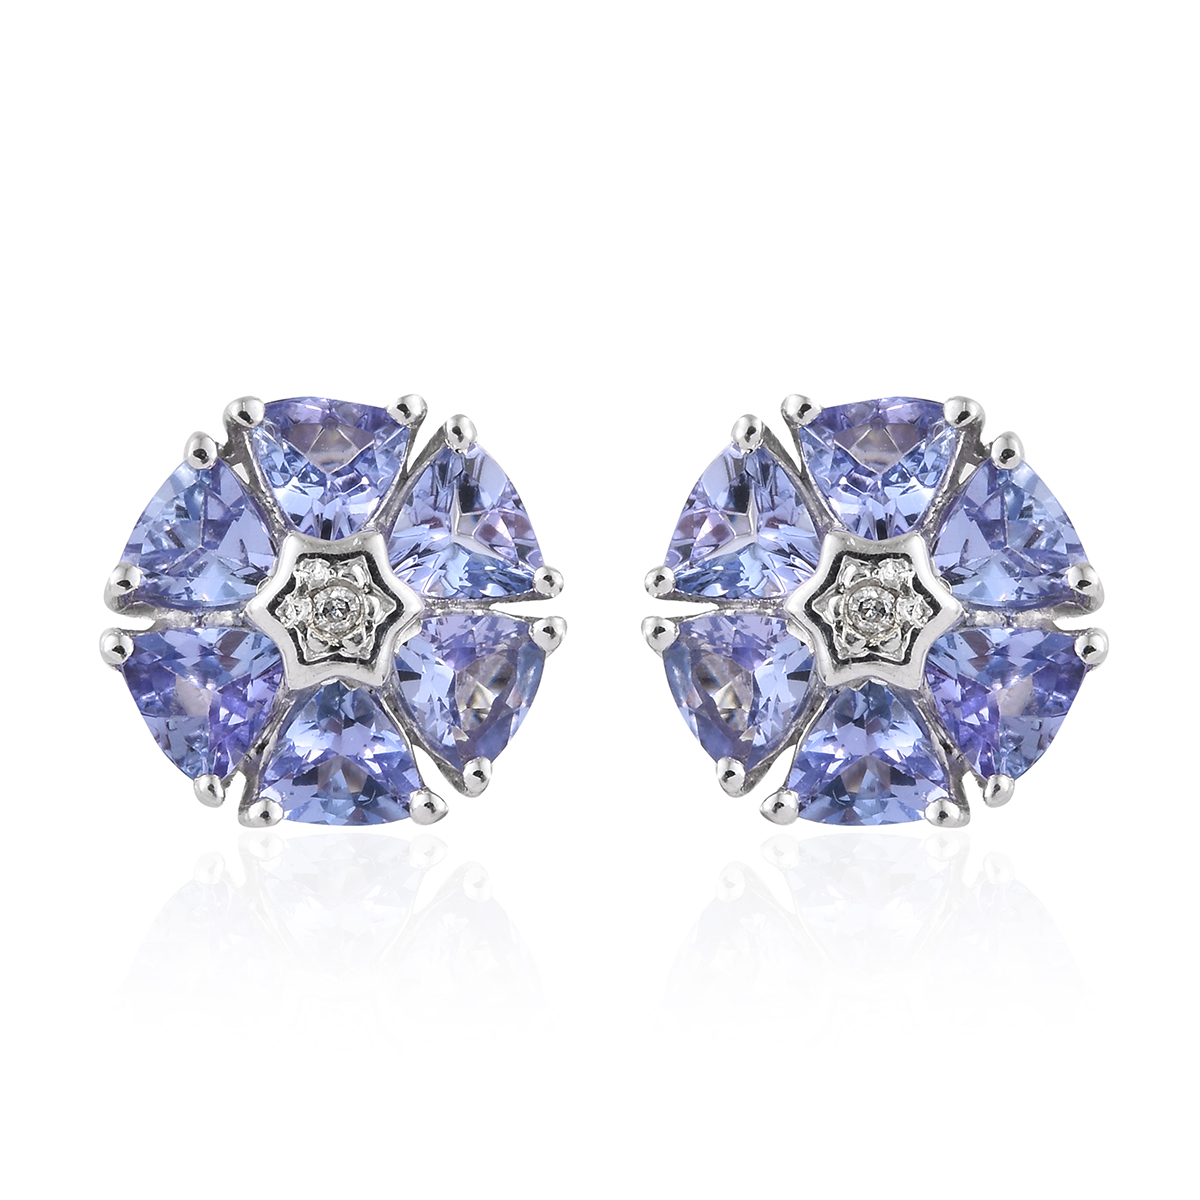 4150819e79d3a Tanzanite, Diamond Accent Platinum Over Sterling Silver Floral Stud  Earrings TGW 2.05 cts.